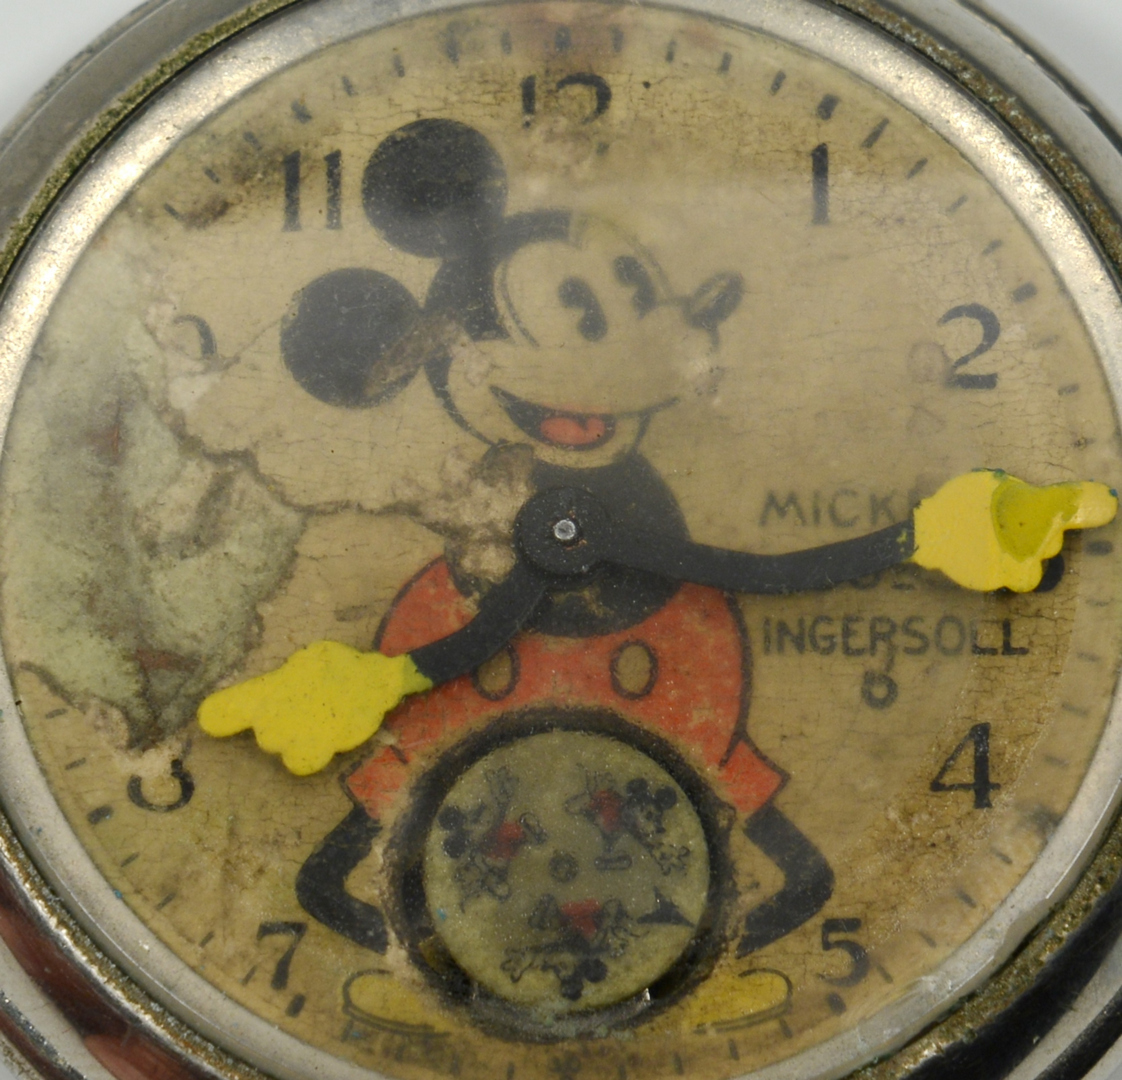 Lot 3088316: 2 Mickey Mouse Ingersoll Pocket Watches & MM Fob